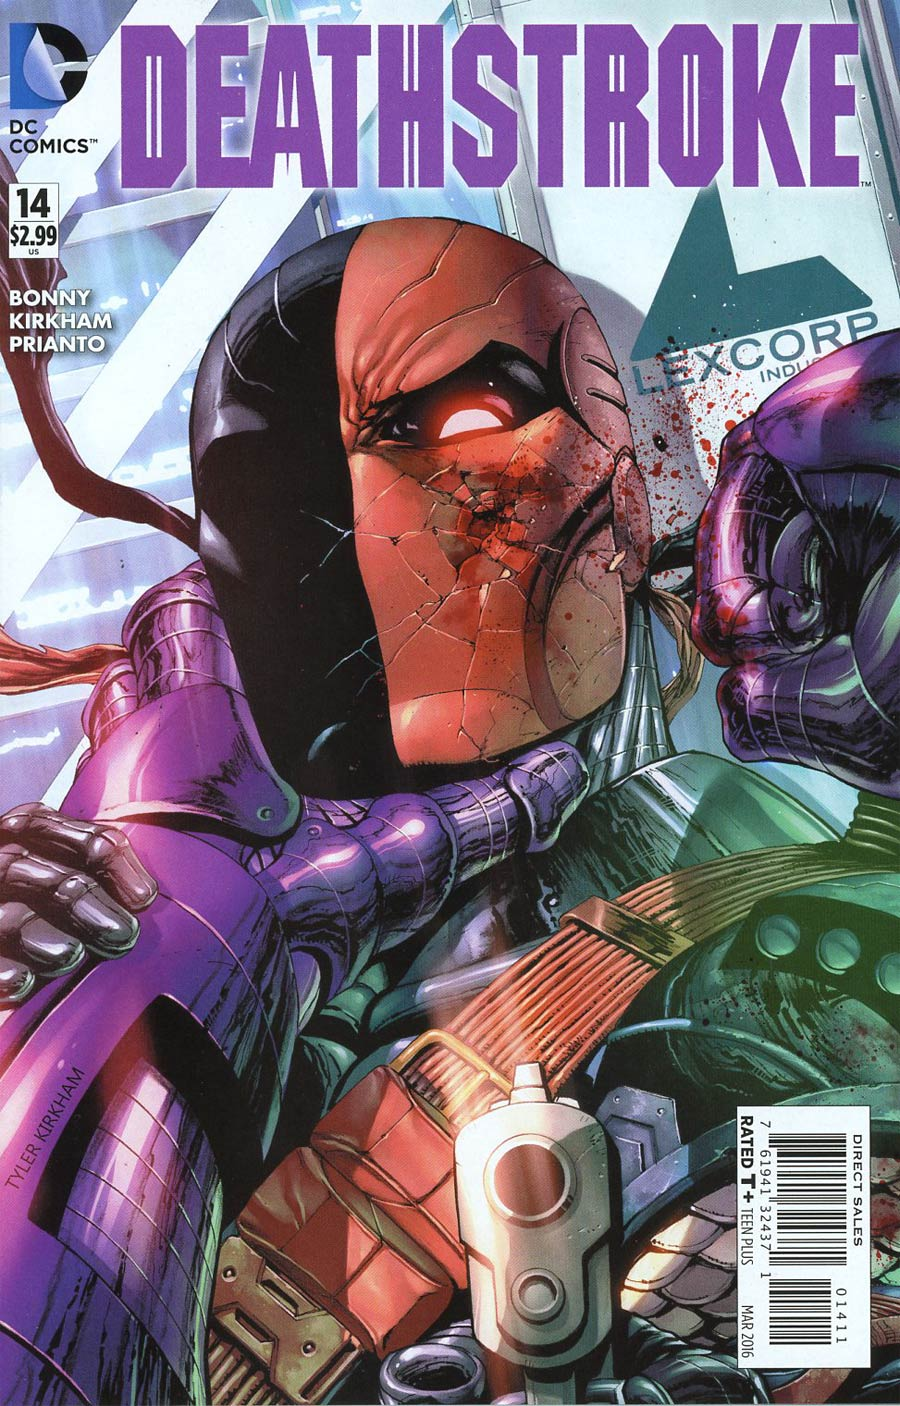 Deathstroke Vol 3 #14 Cover A Regular Tyler Kirkham Cover